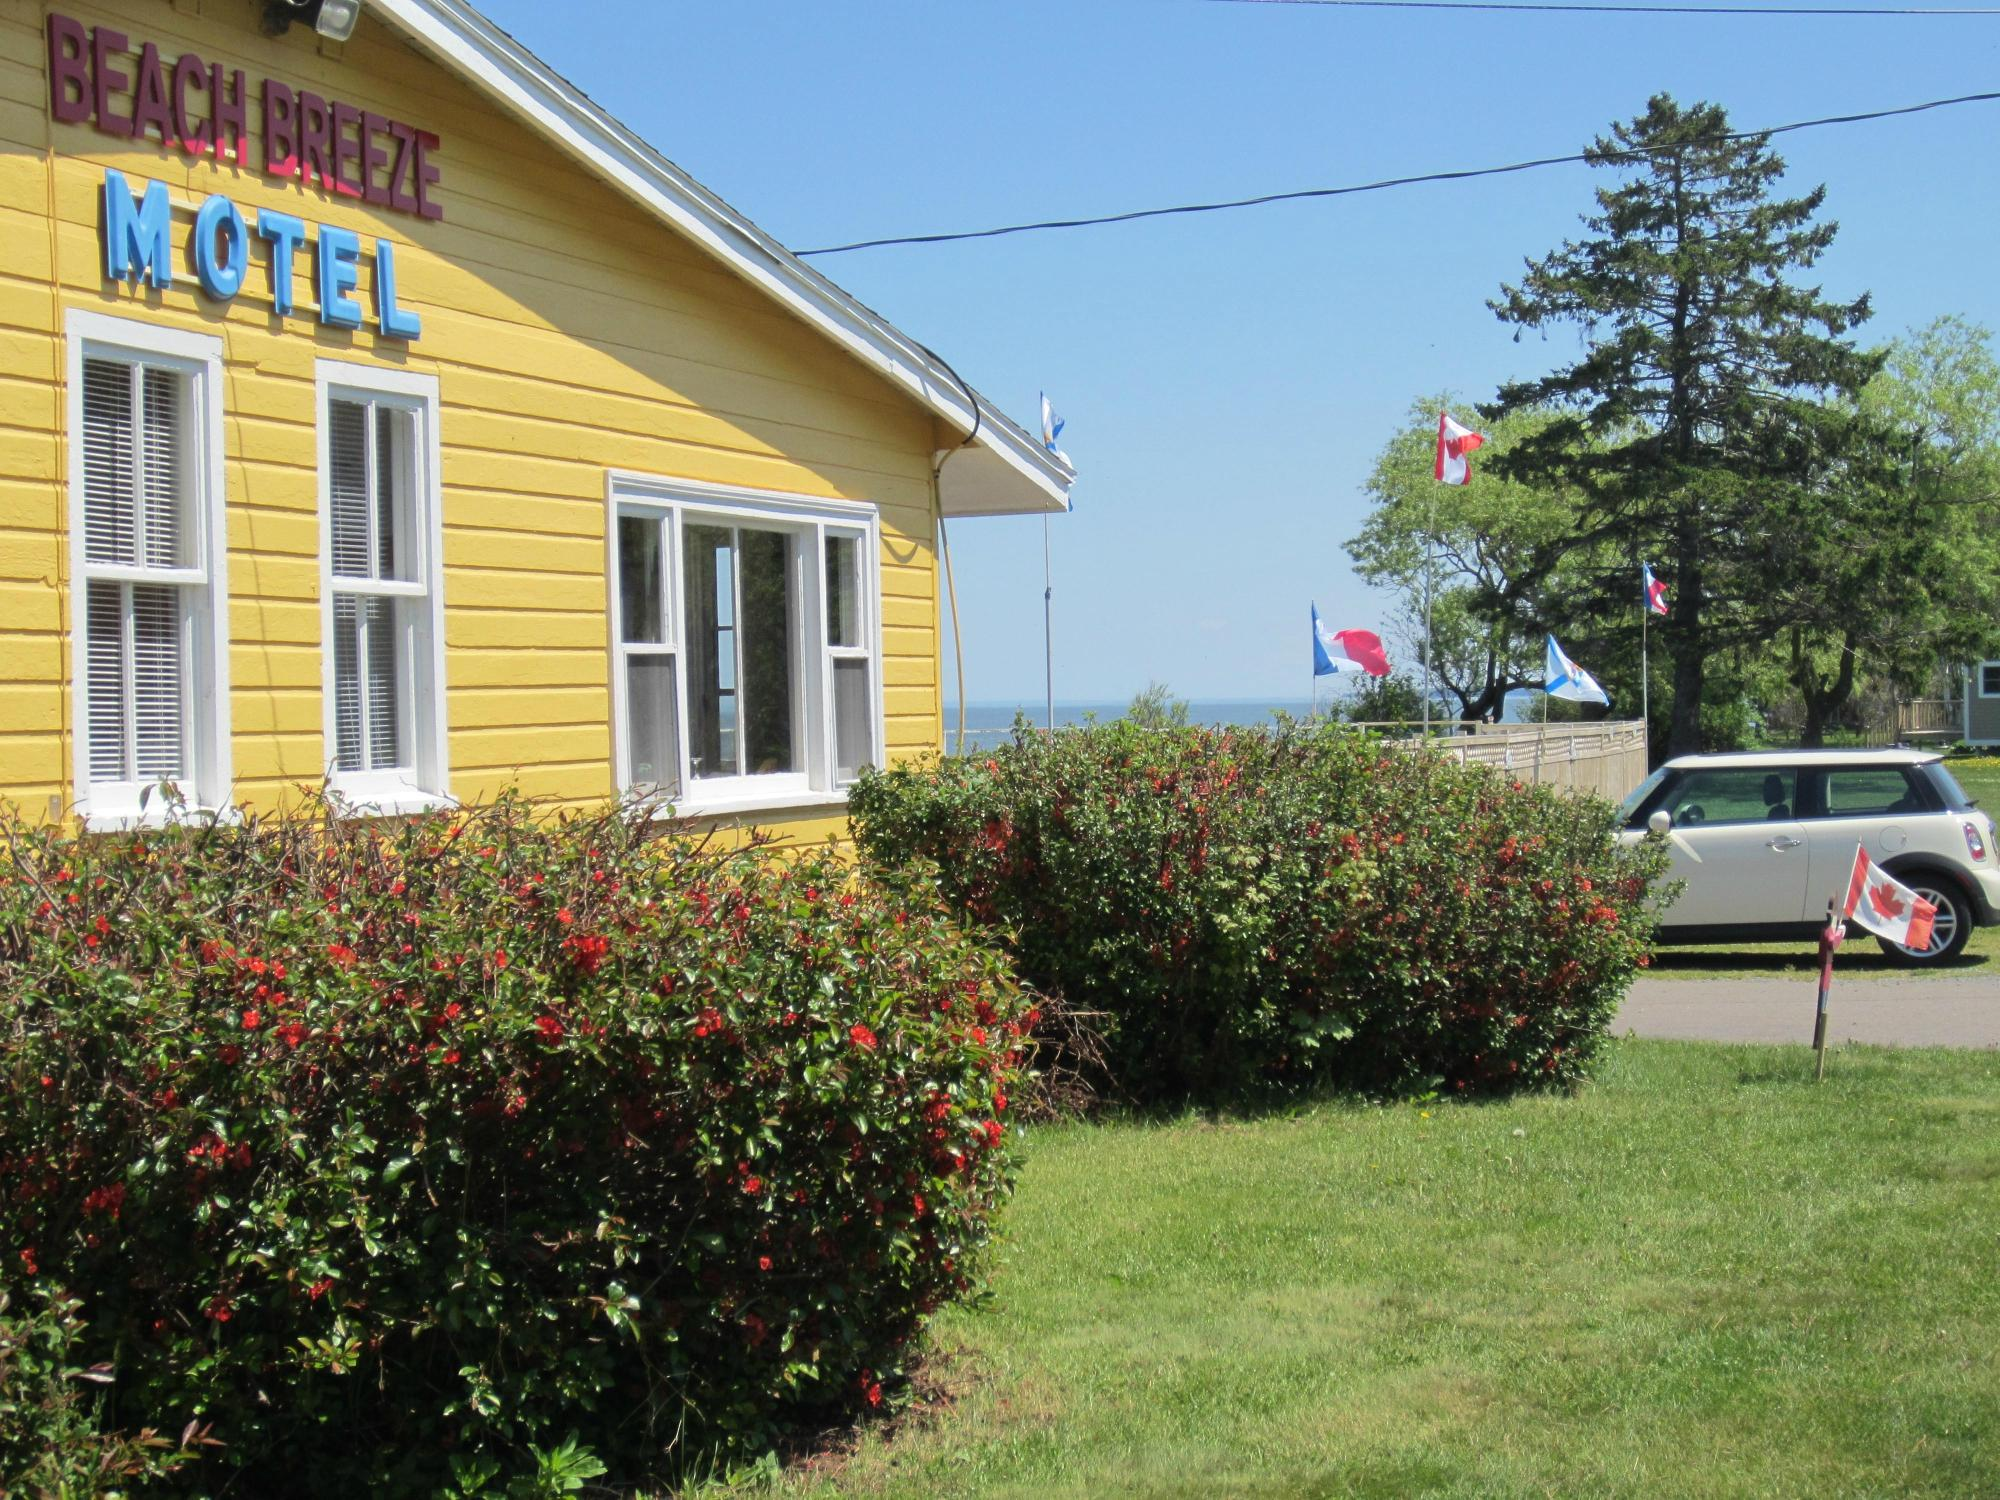 Beach Breeze Motel